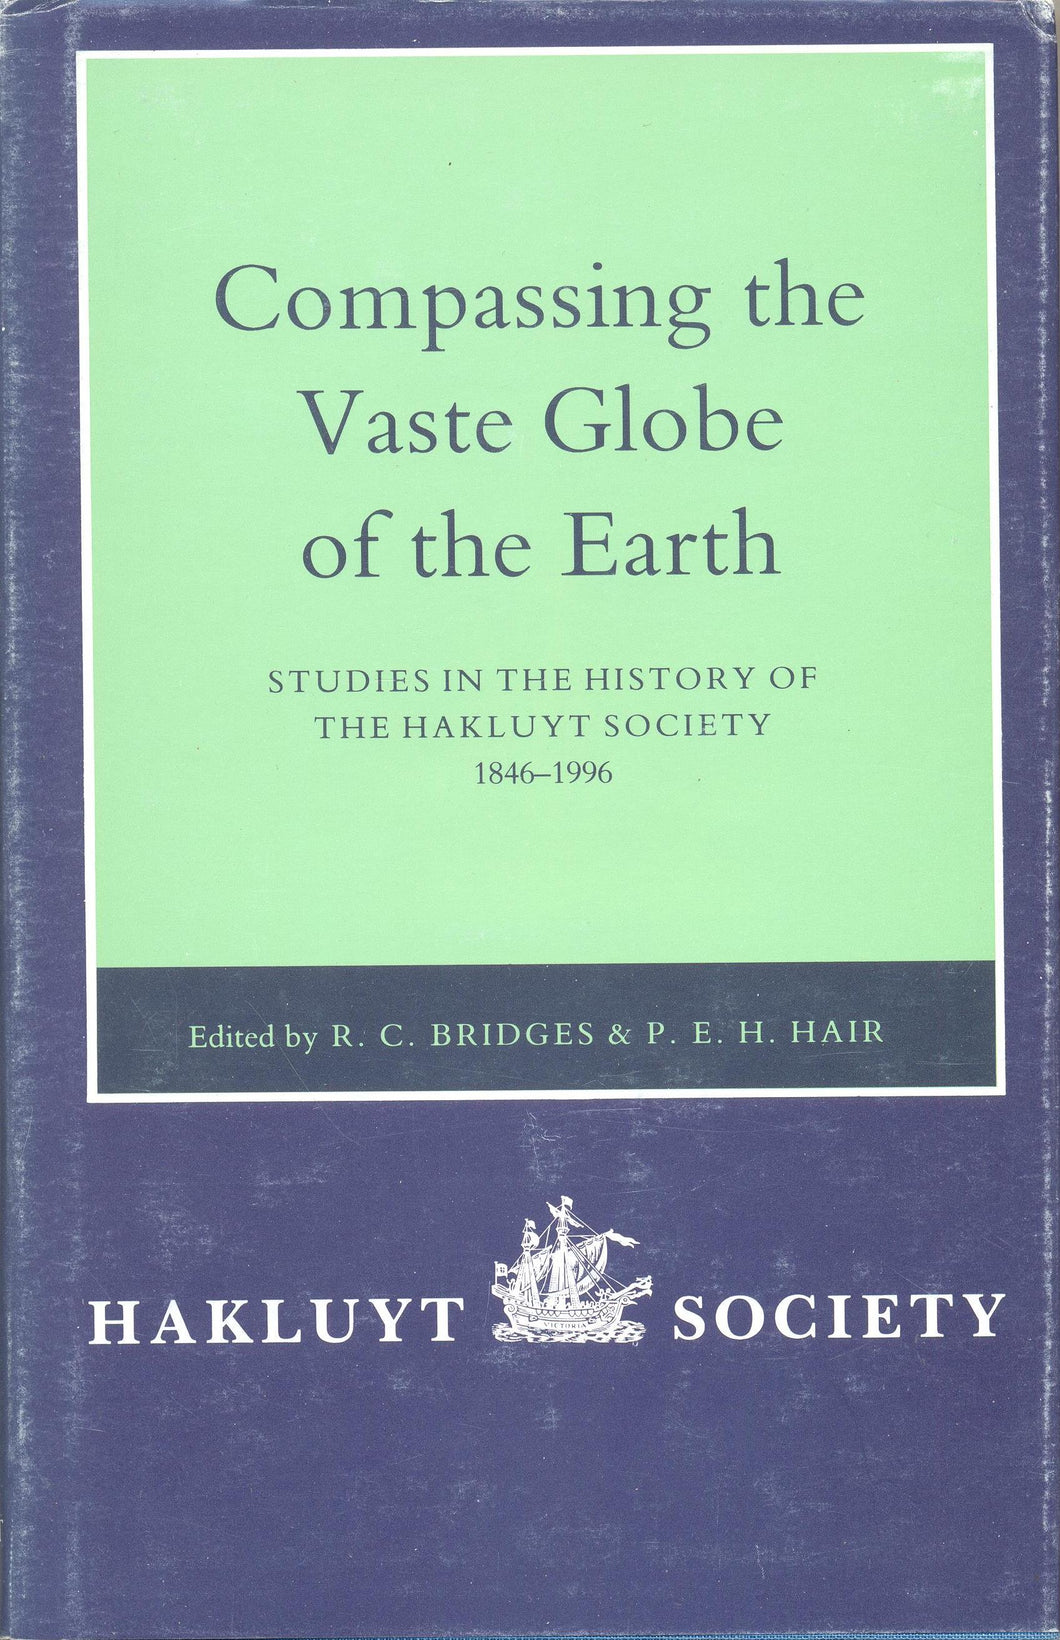 Compassing the Vaste Globe of the Earth : Studies in the History of the Hakluyt Society 1846 - 1996 by R C Bridges and P E H Hair (eds)